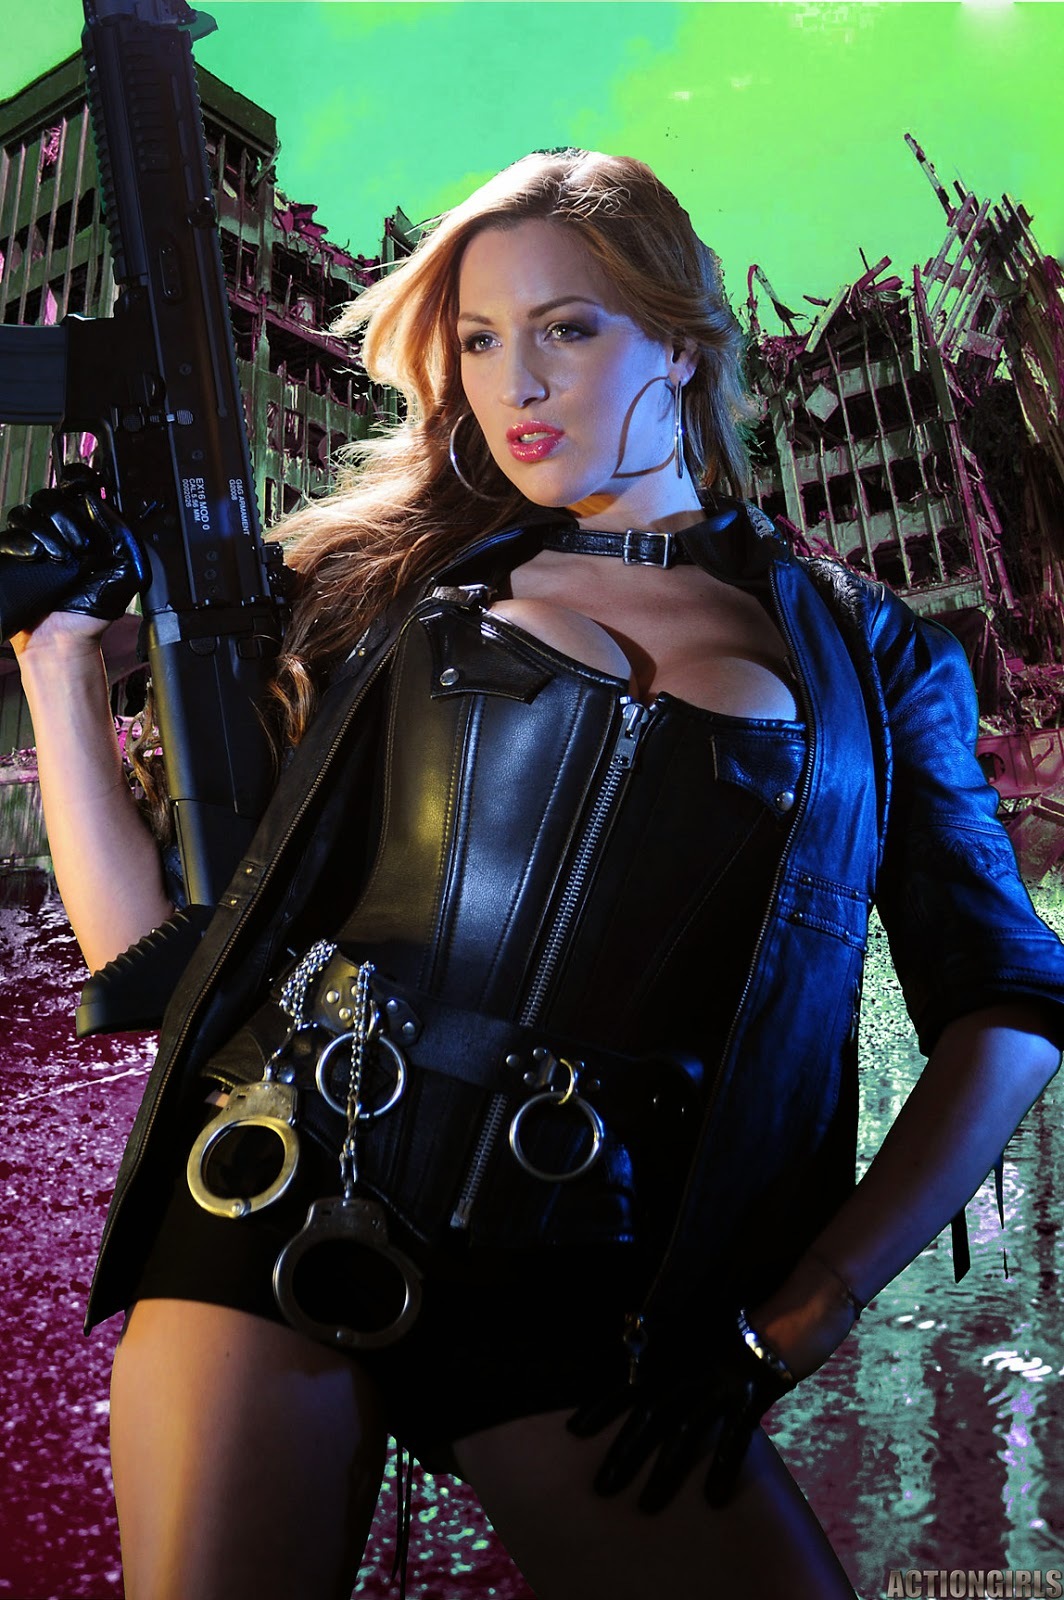 Jordan Carver Big Boobs Show With Gun In Leather Killer -9270